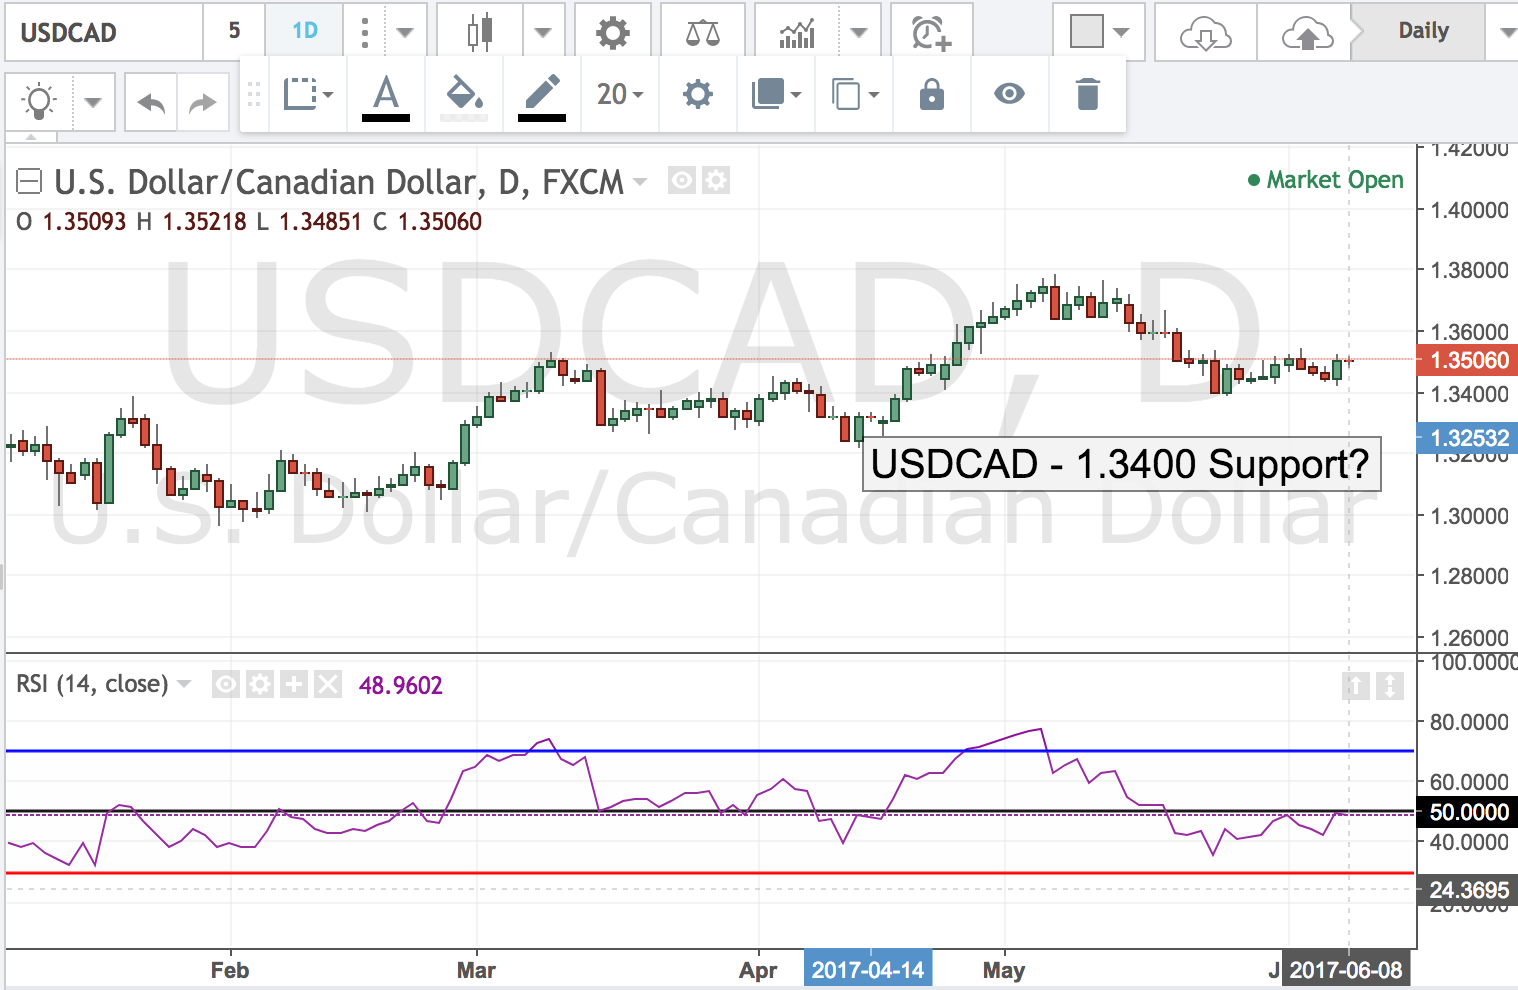 USDCAD – 1.3400 Support?